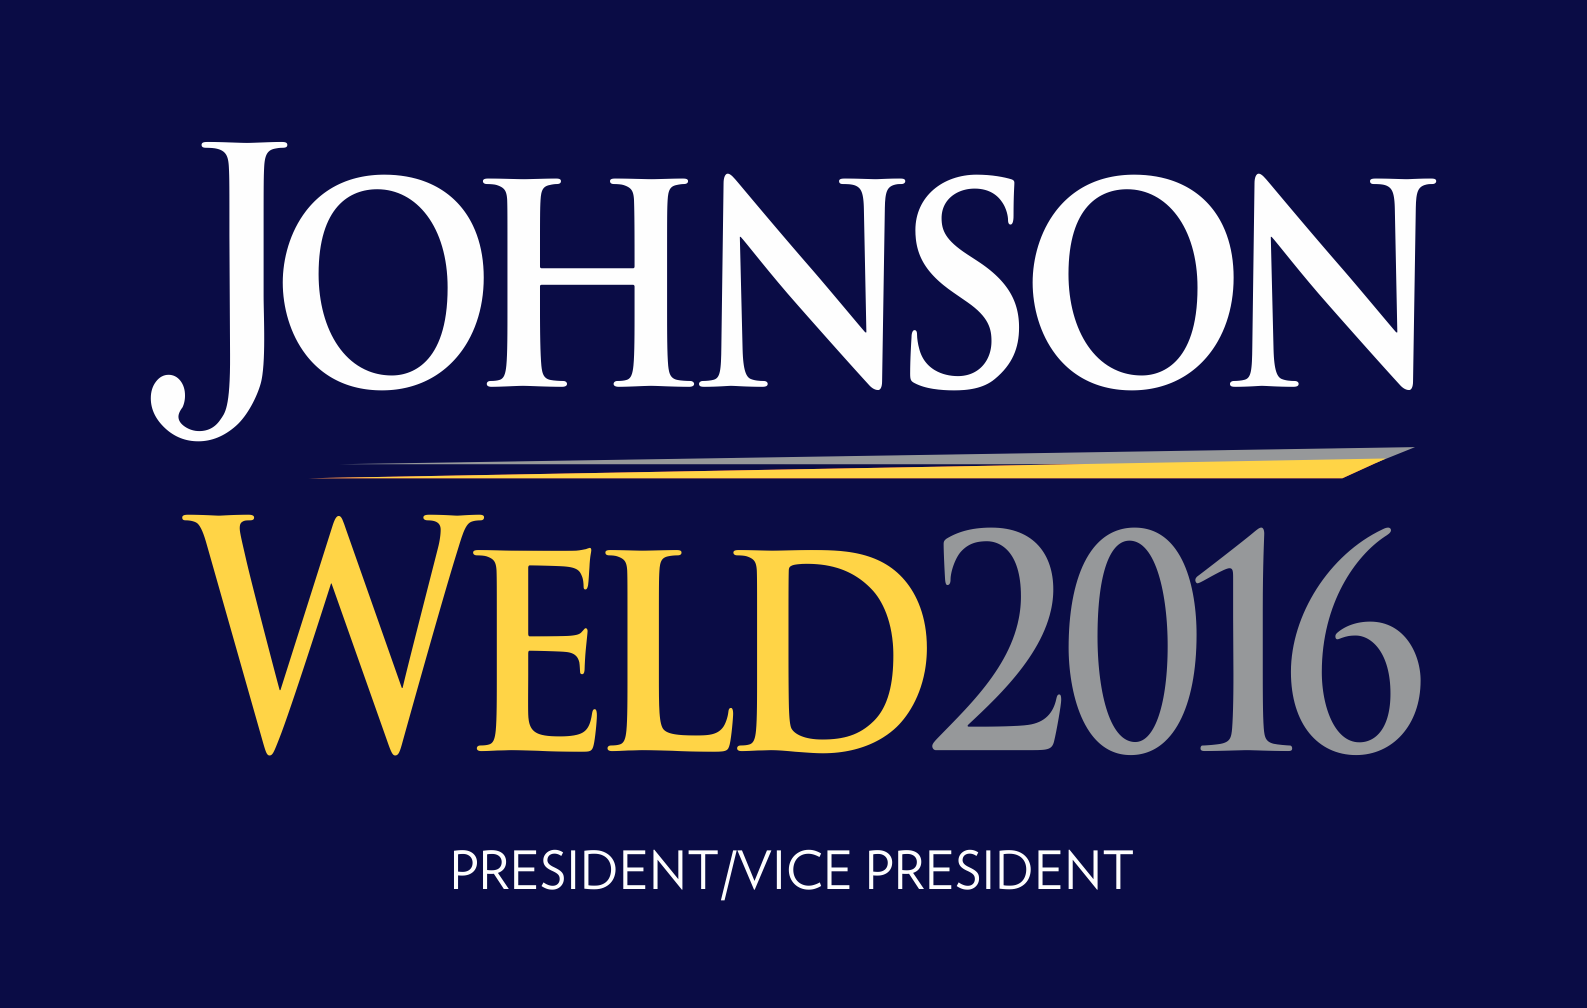 Johnson_Weld_2016.png